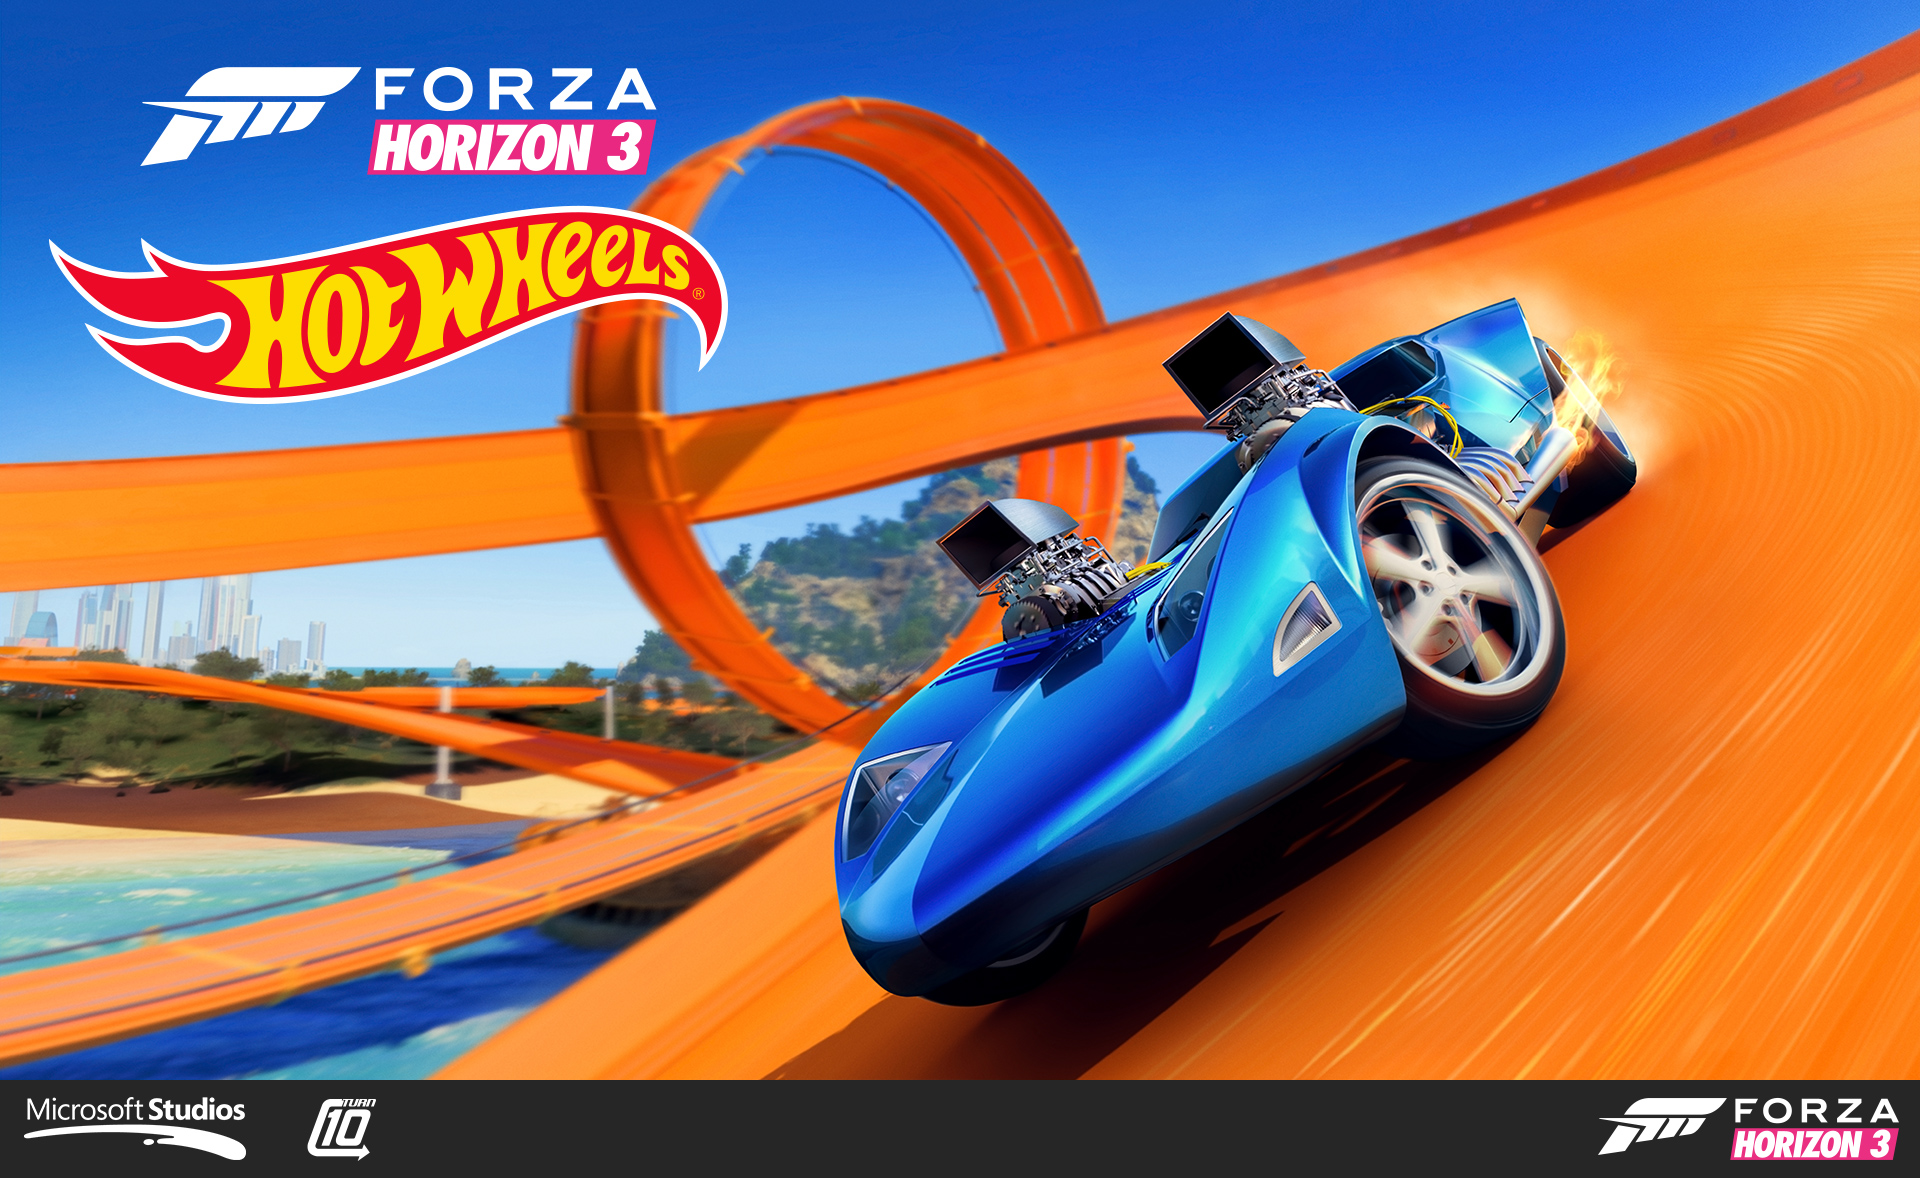 Forza Horizon 3 Hot Wheels expansion box art. Art direction by Tim Dean. I helped compose the image, shot the plates, and was responsible for some direction and editing.